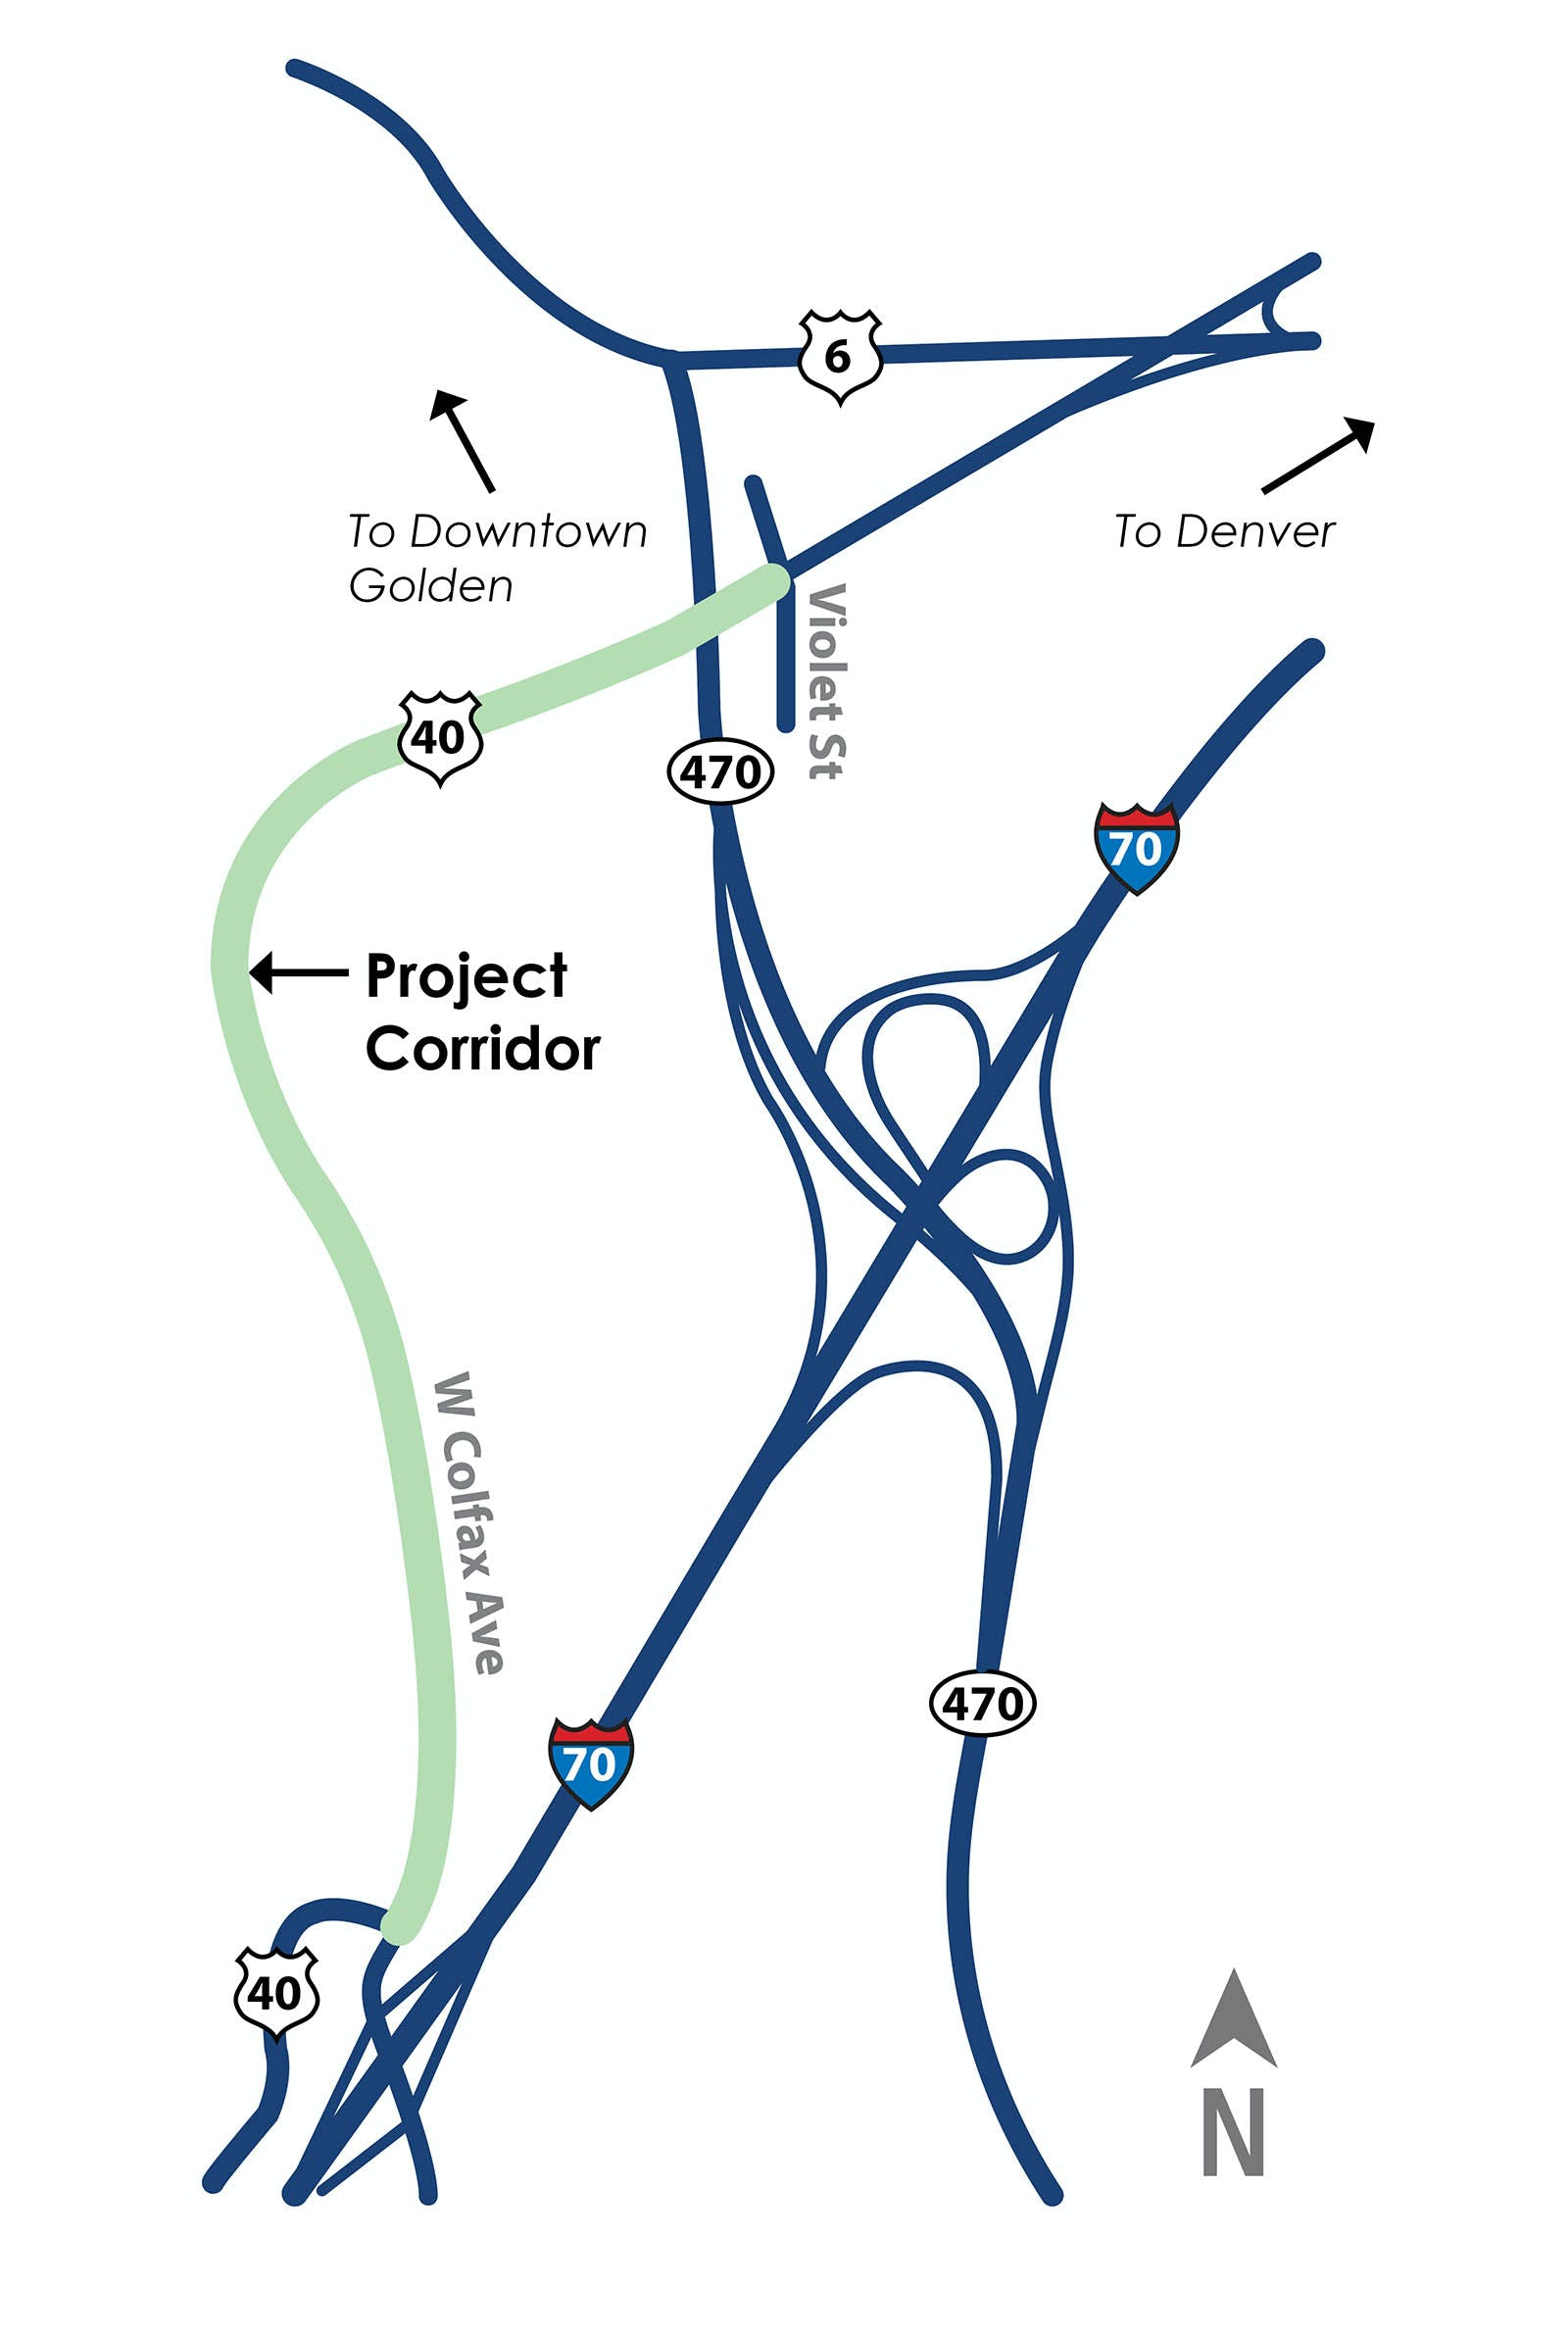 Map of the project corridor along W. Colfax Ave.